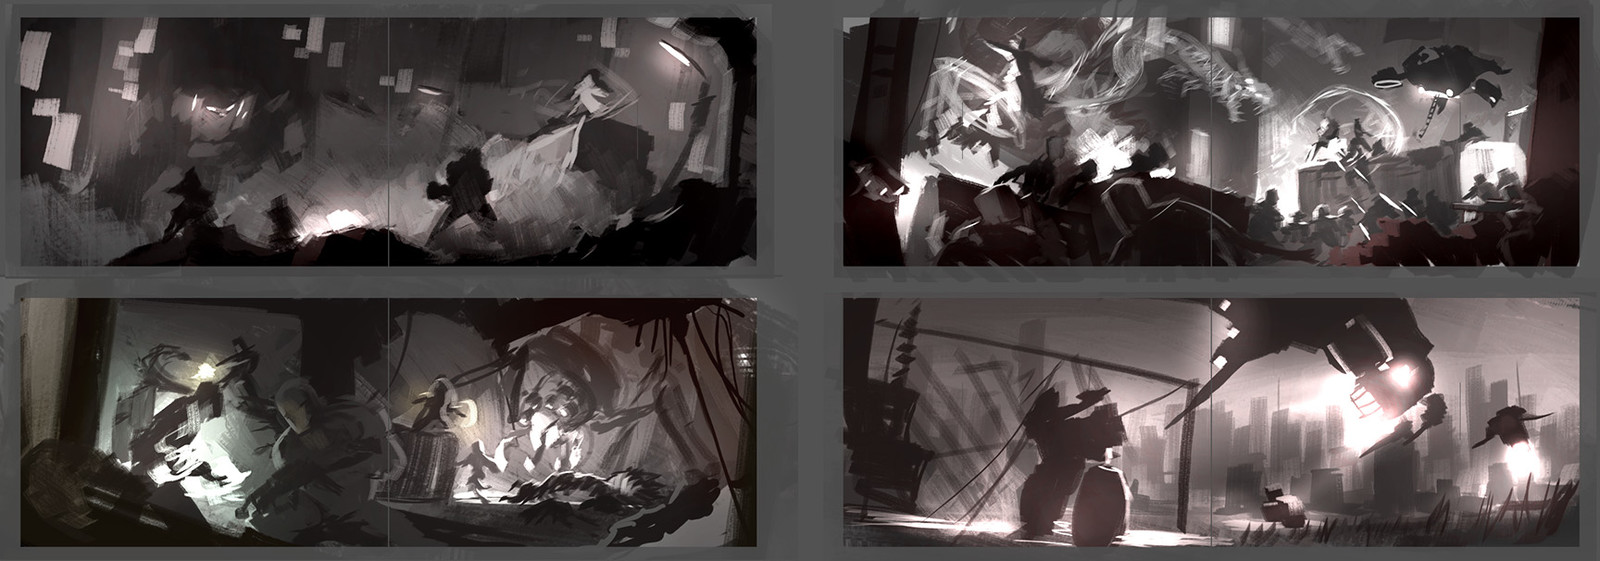 I did a lot of sketching trying to find compositions that would work individually and a set.